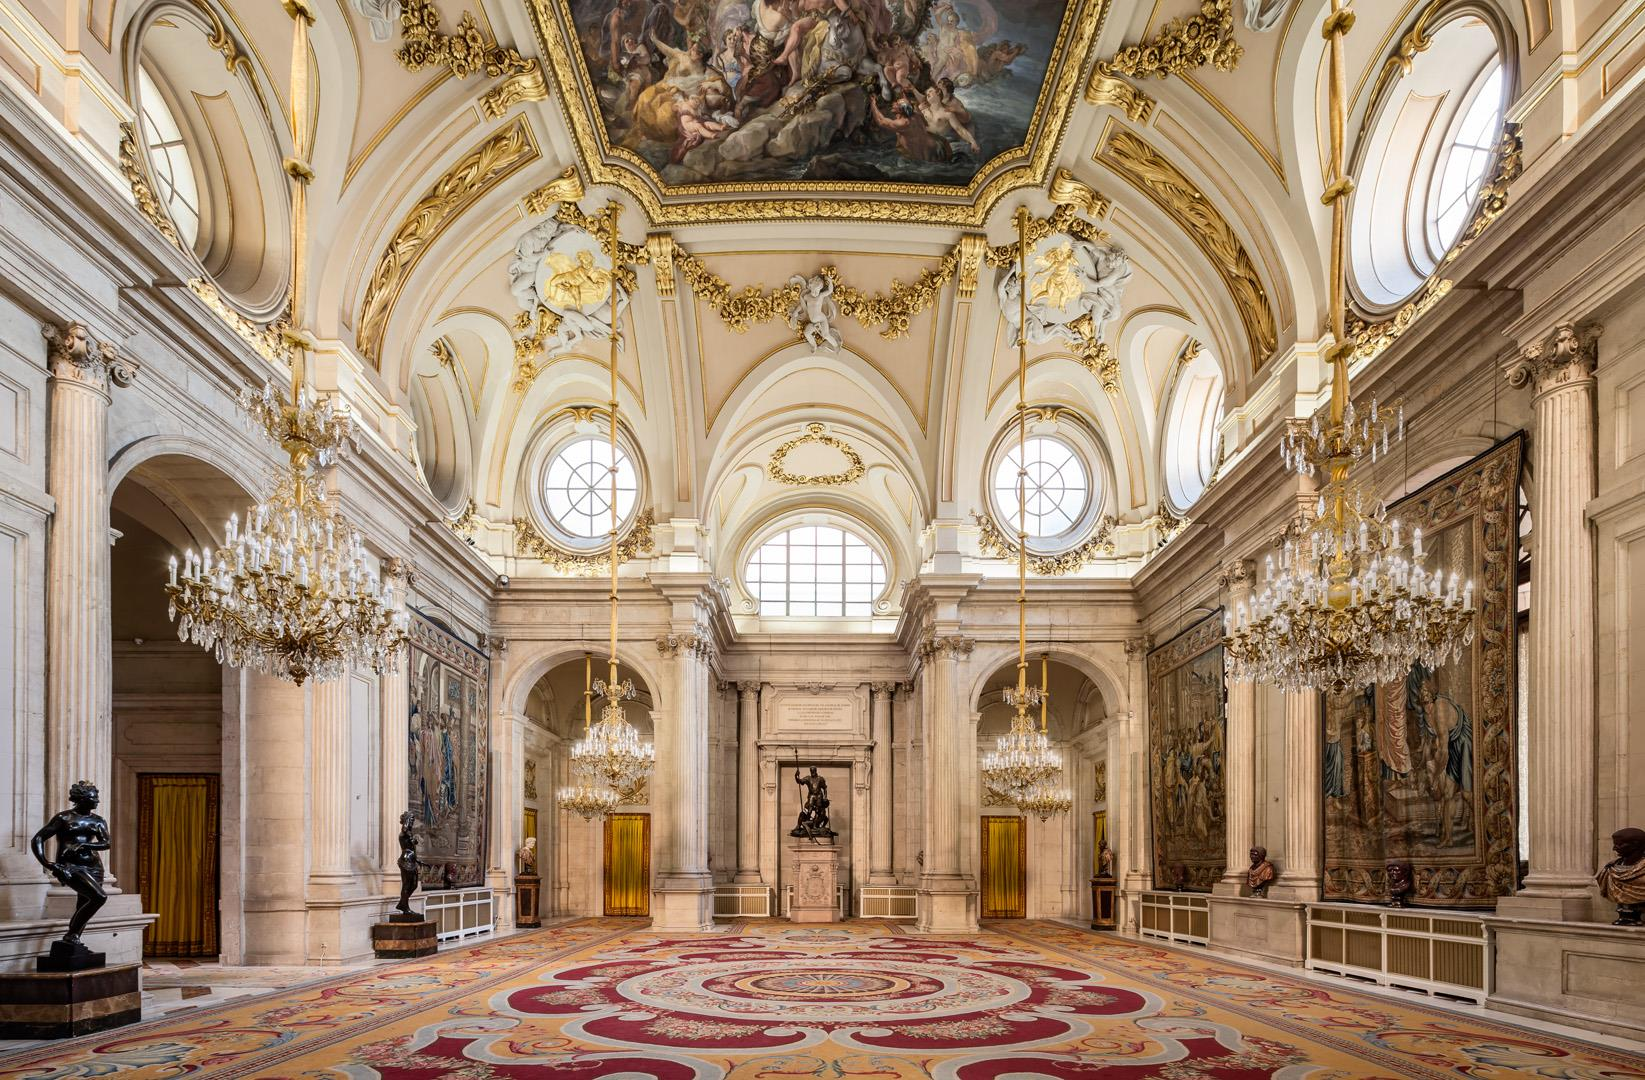 Tour-of-the-Royal-Palace-of-Madrid-without-queue-5